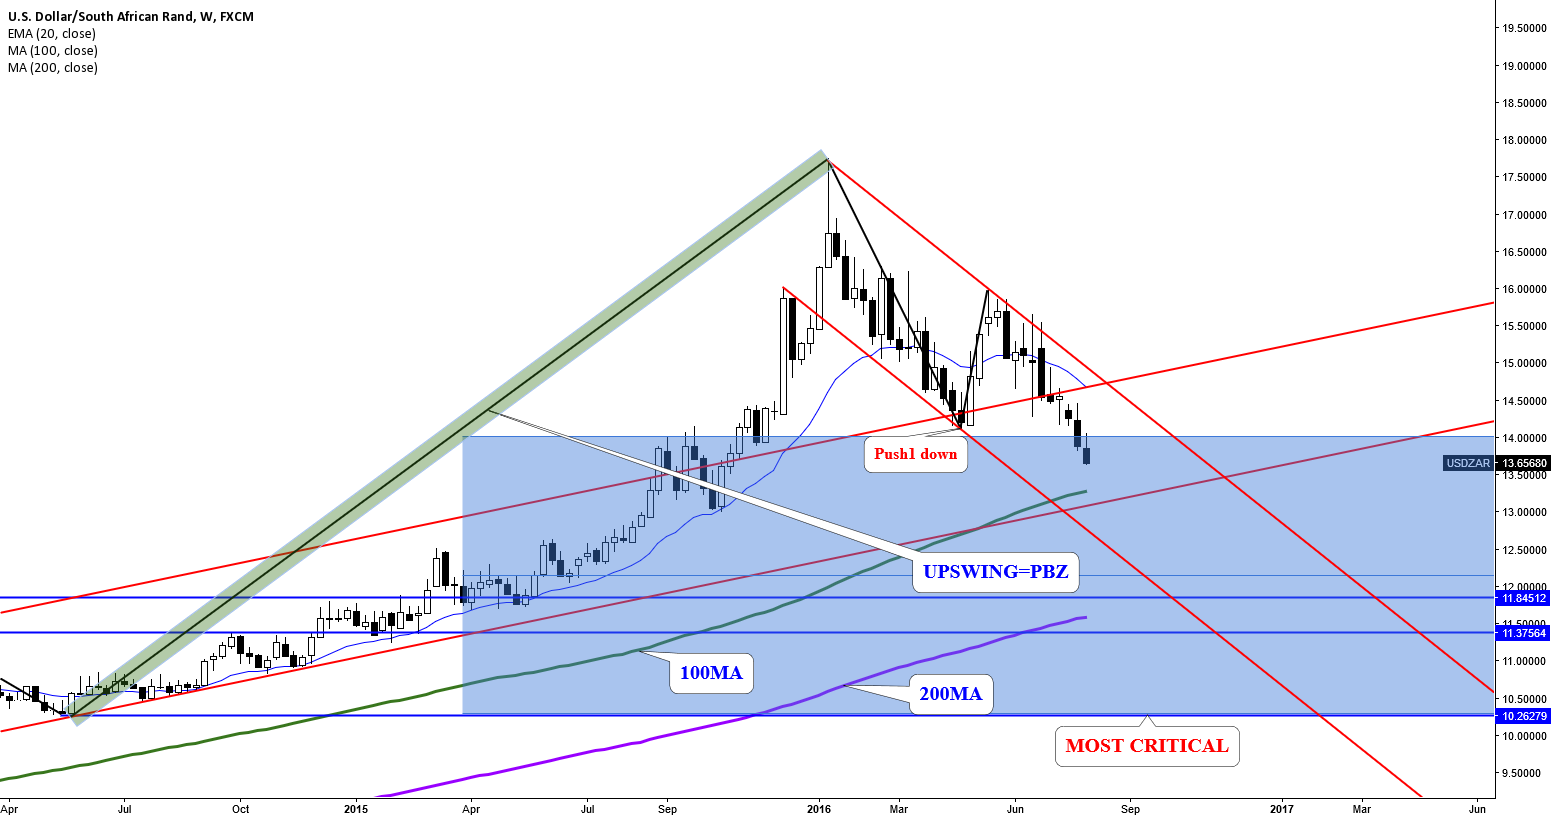 USDZAR: IN CORRECTIVE PHASE. PUSH2 UNDERWAY